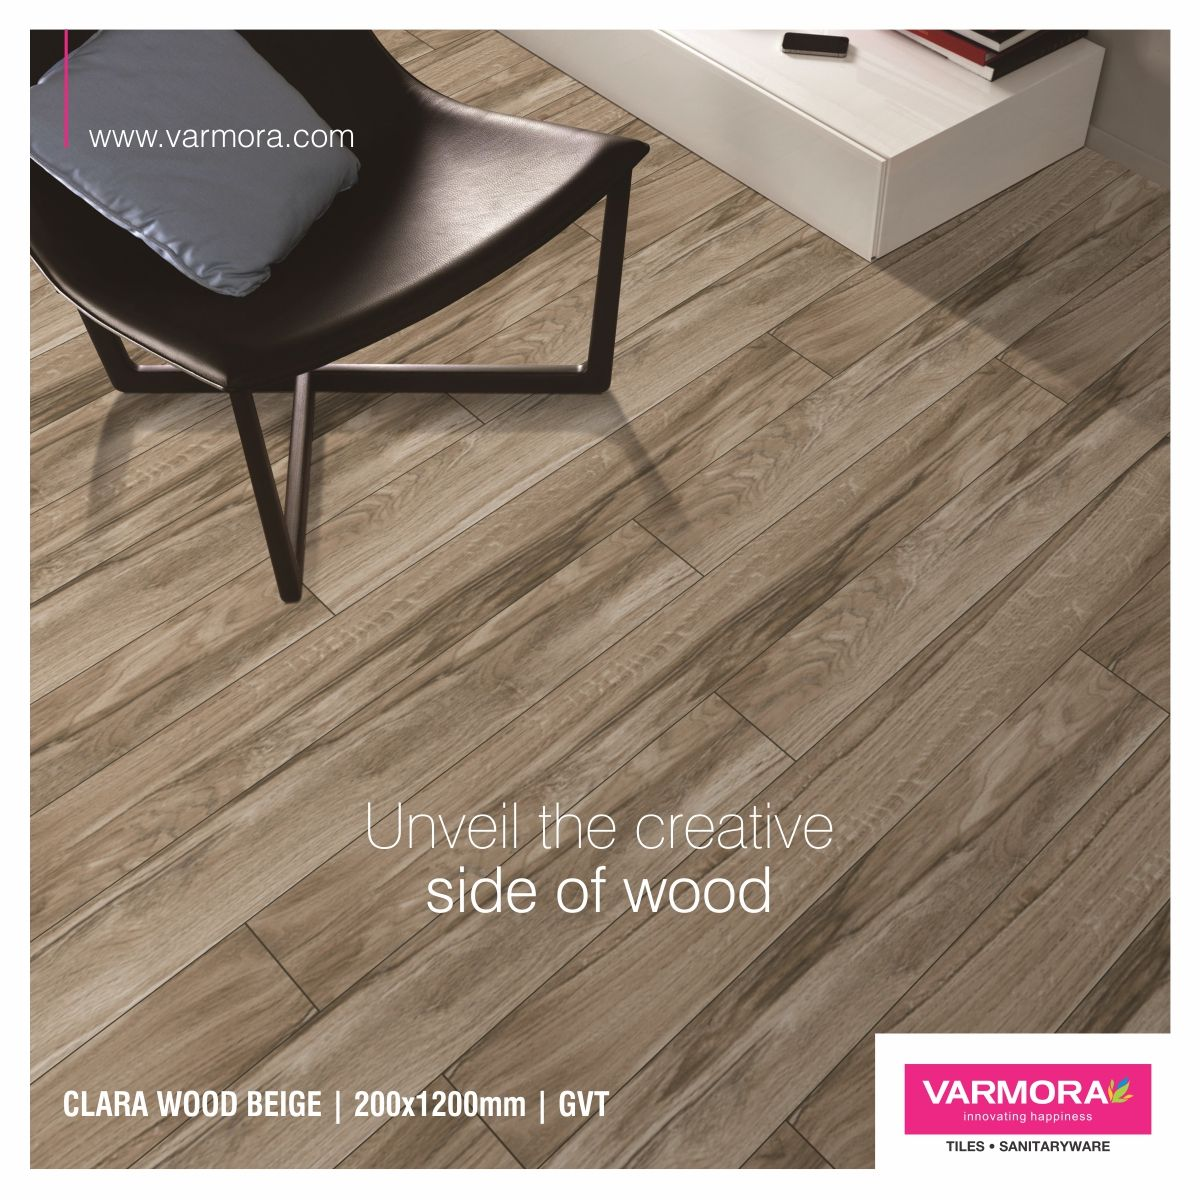 Varmora presents amazing floor tiles options for you to experience ...